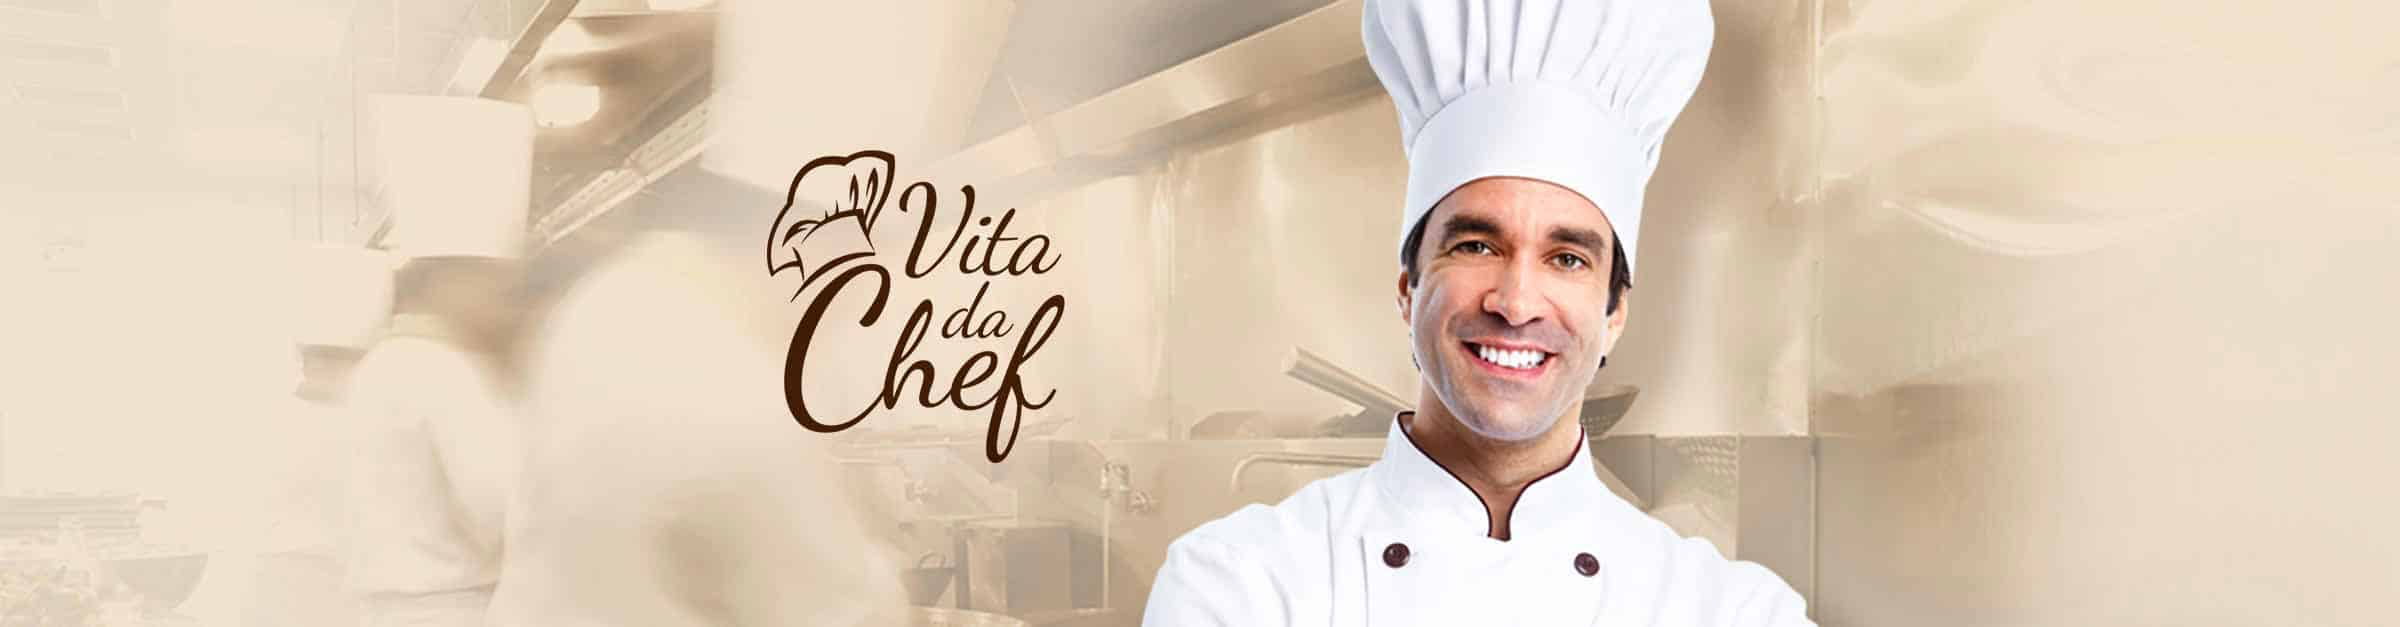 Vita da Chef - Simon Italian Food